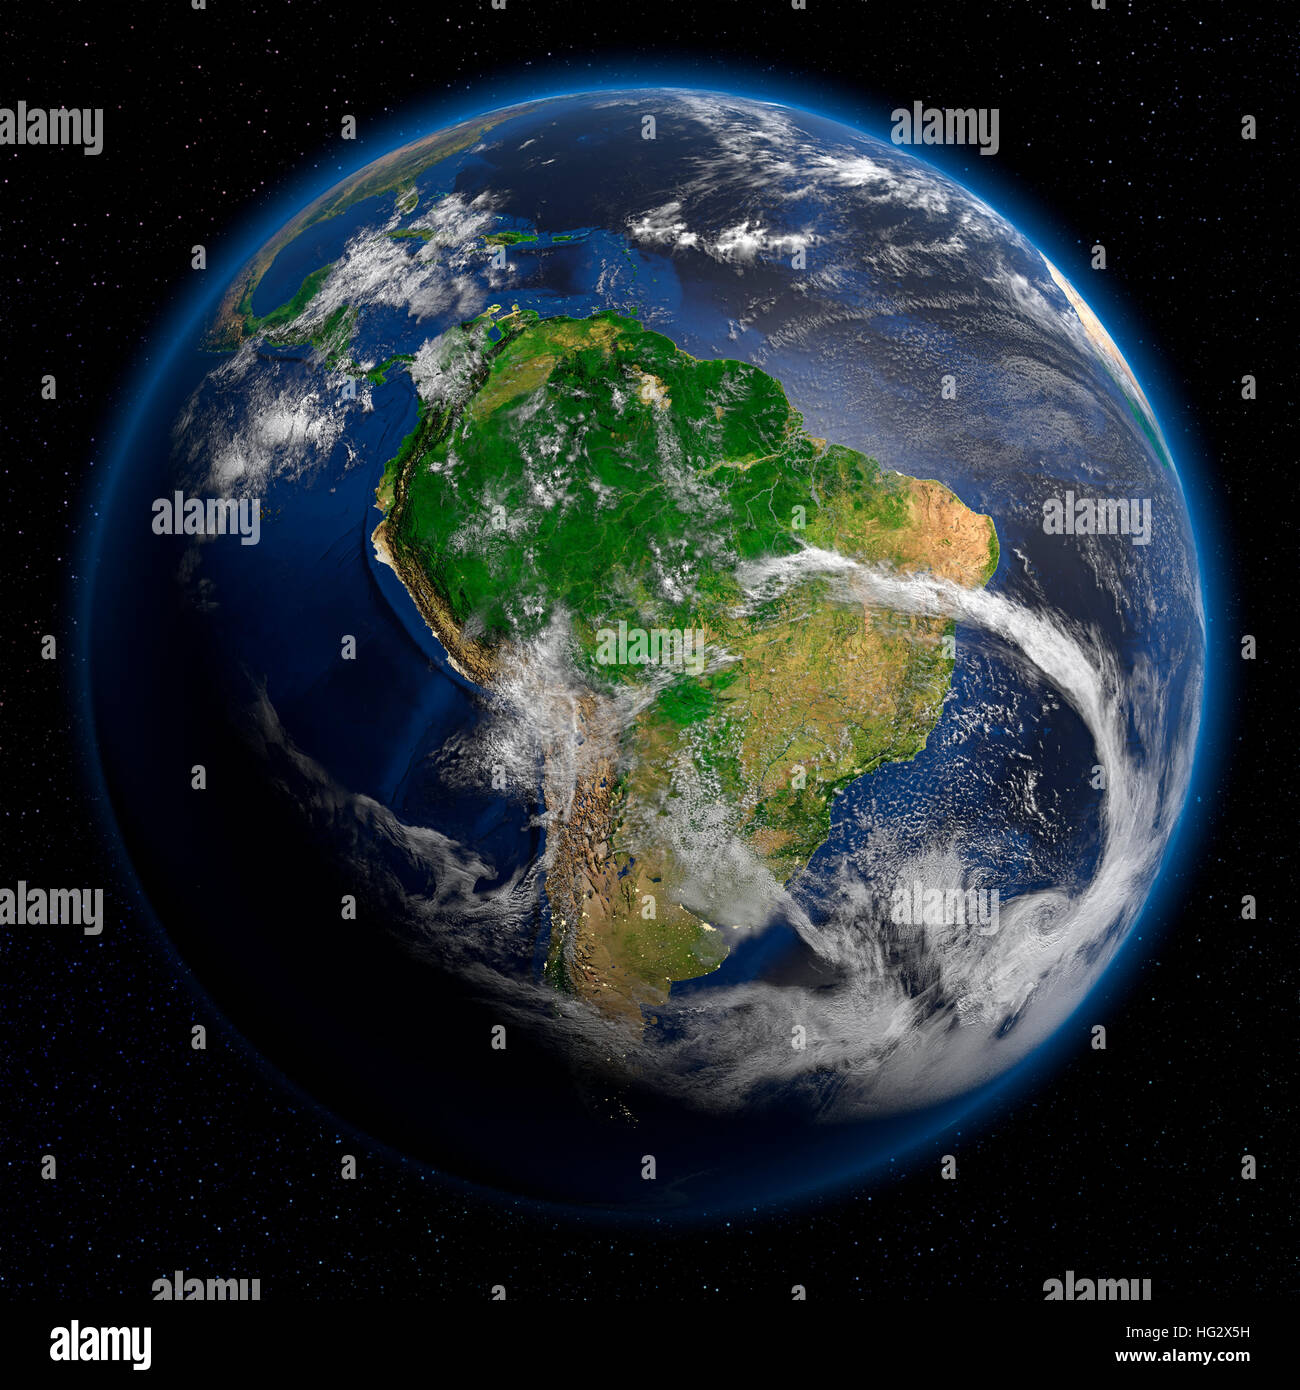 Earth viewed from space showing South America. Realistic digital illustration including relief map hill shading - Stock Image